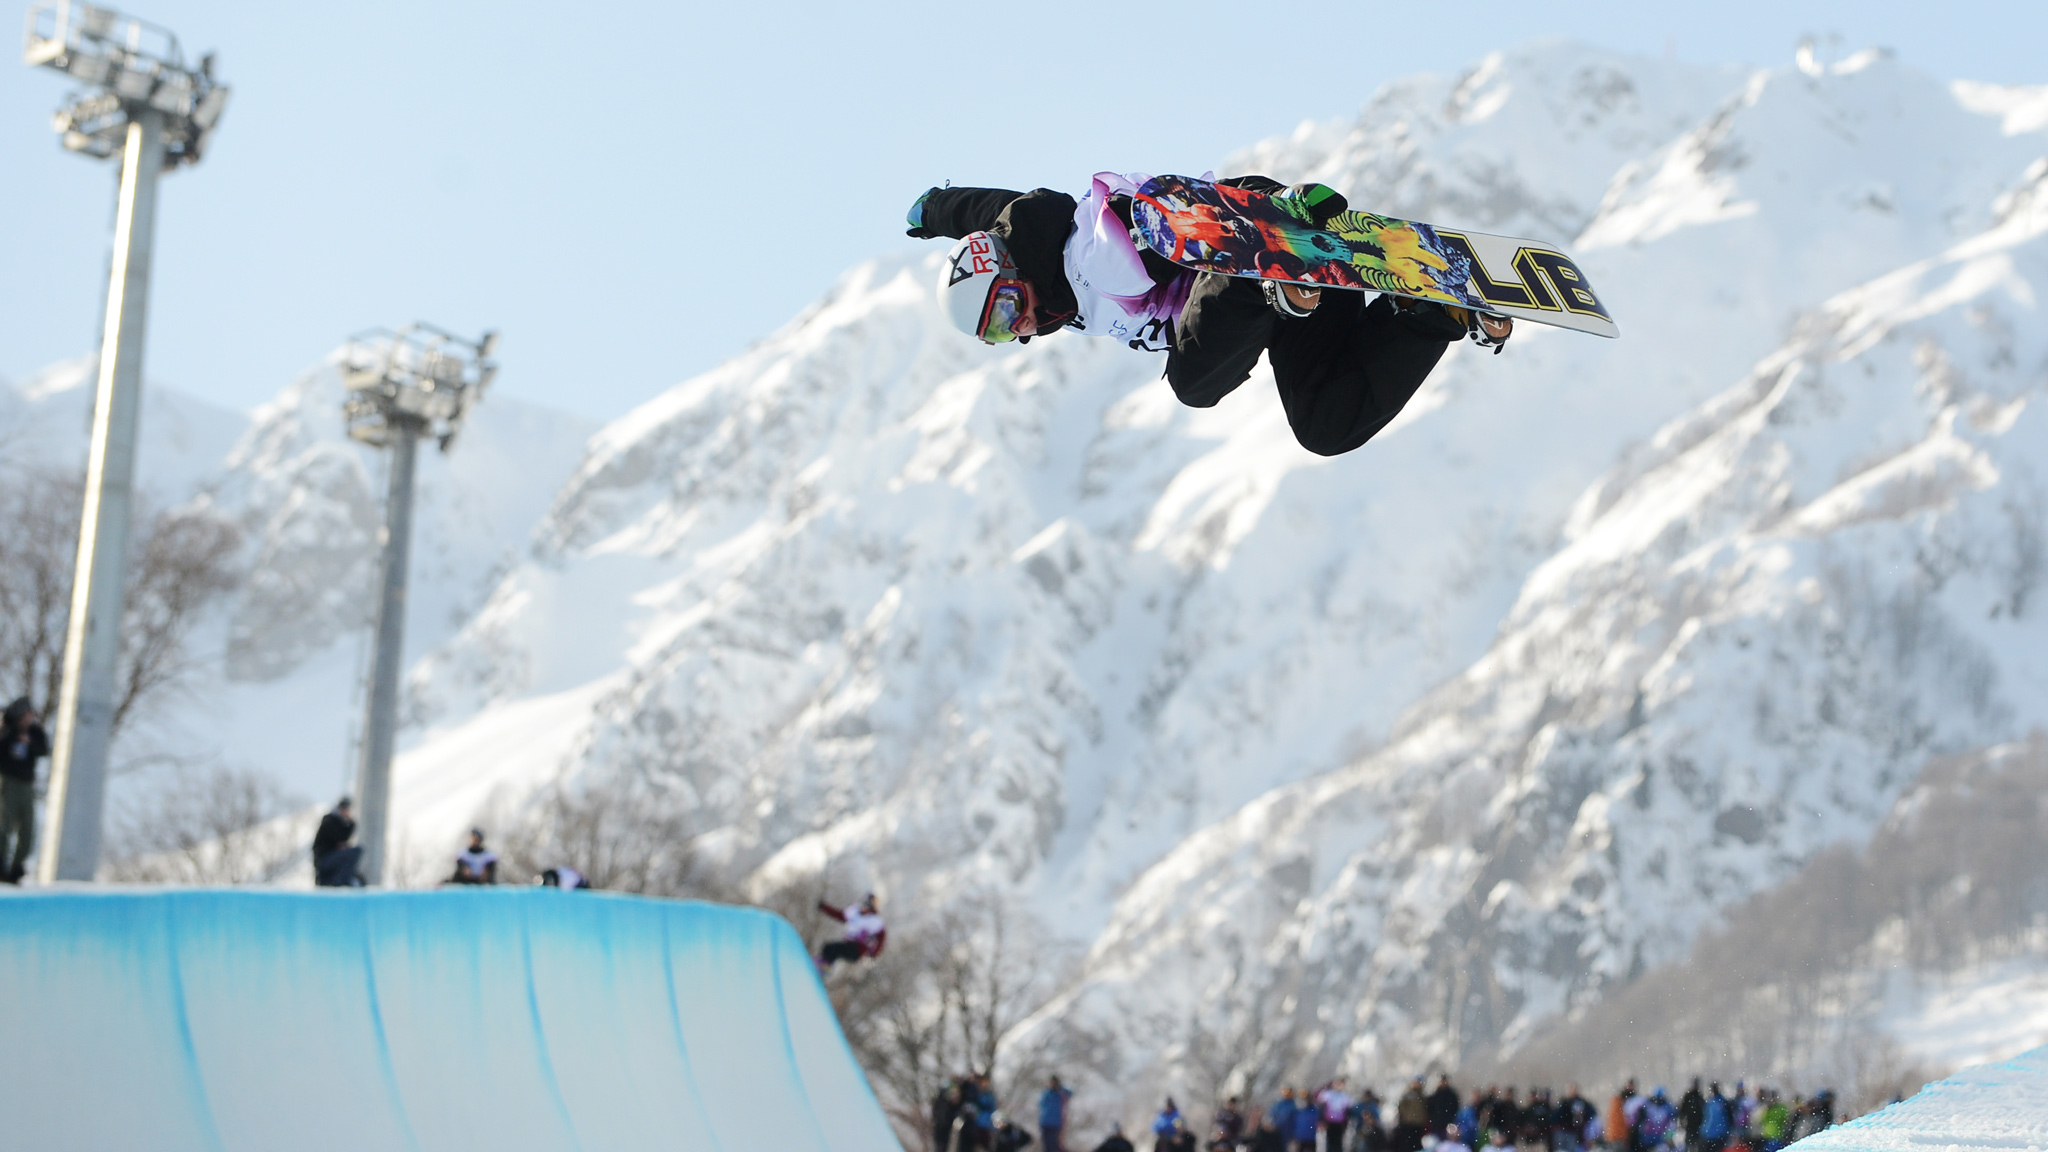 When it's not raining, the mountain view from the Sochi halfpipe is pretty impressive.